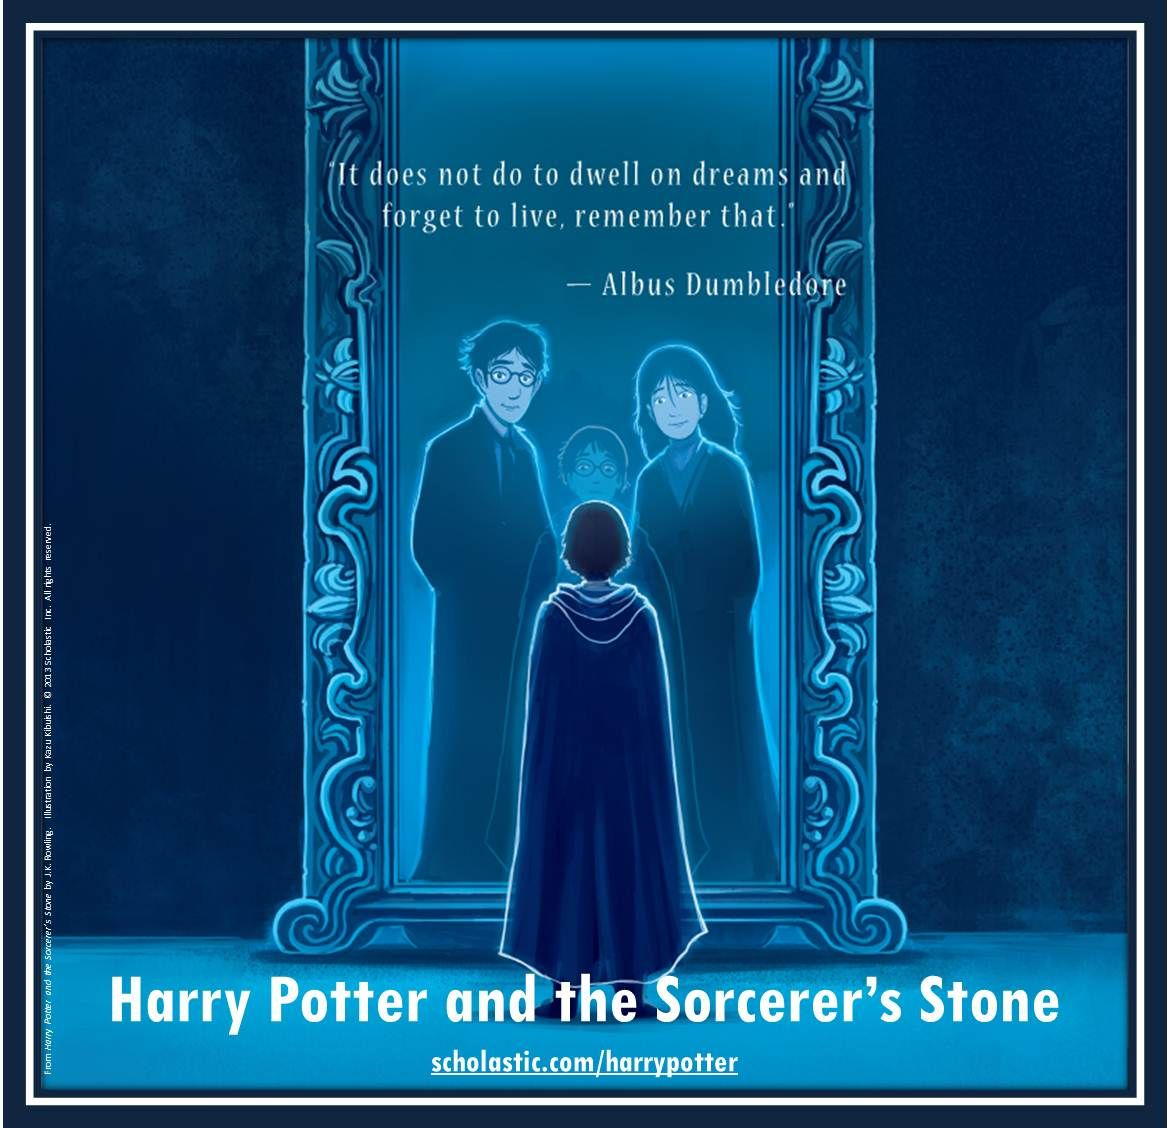 Book Cover Art Quotes ~ New back cover for harry potter and the sorcerer s stone